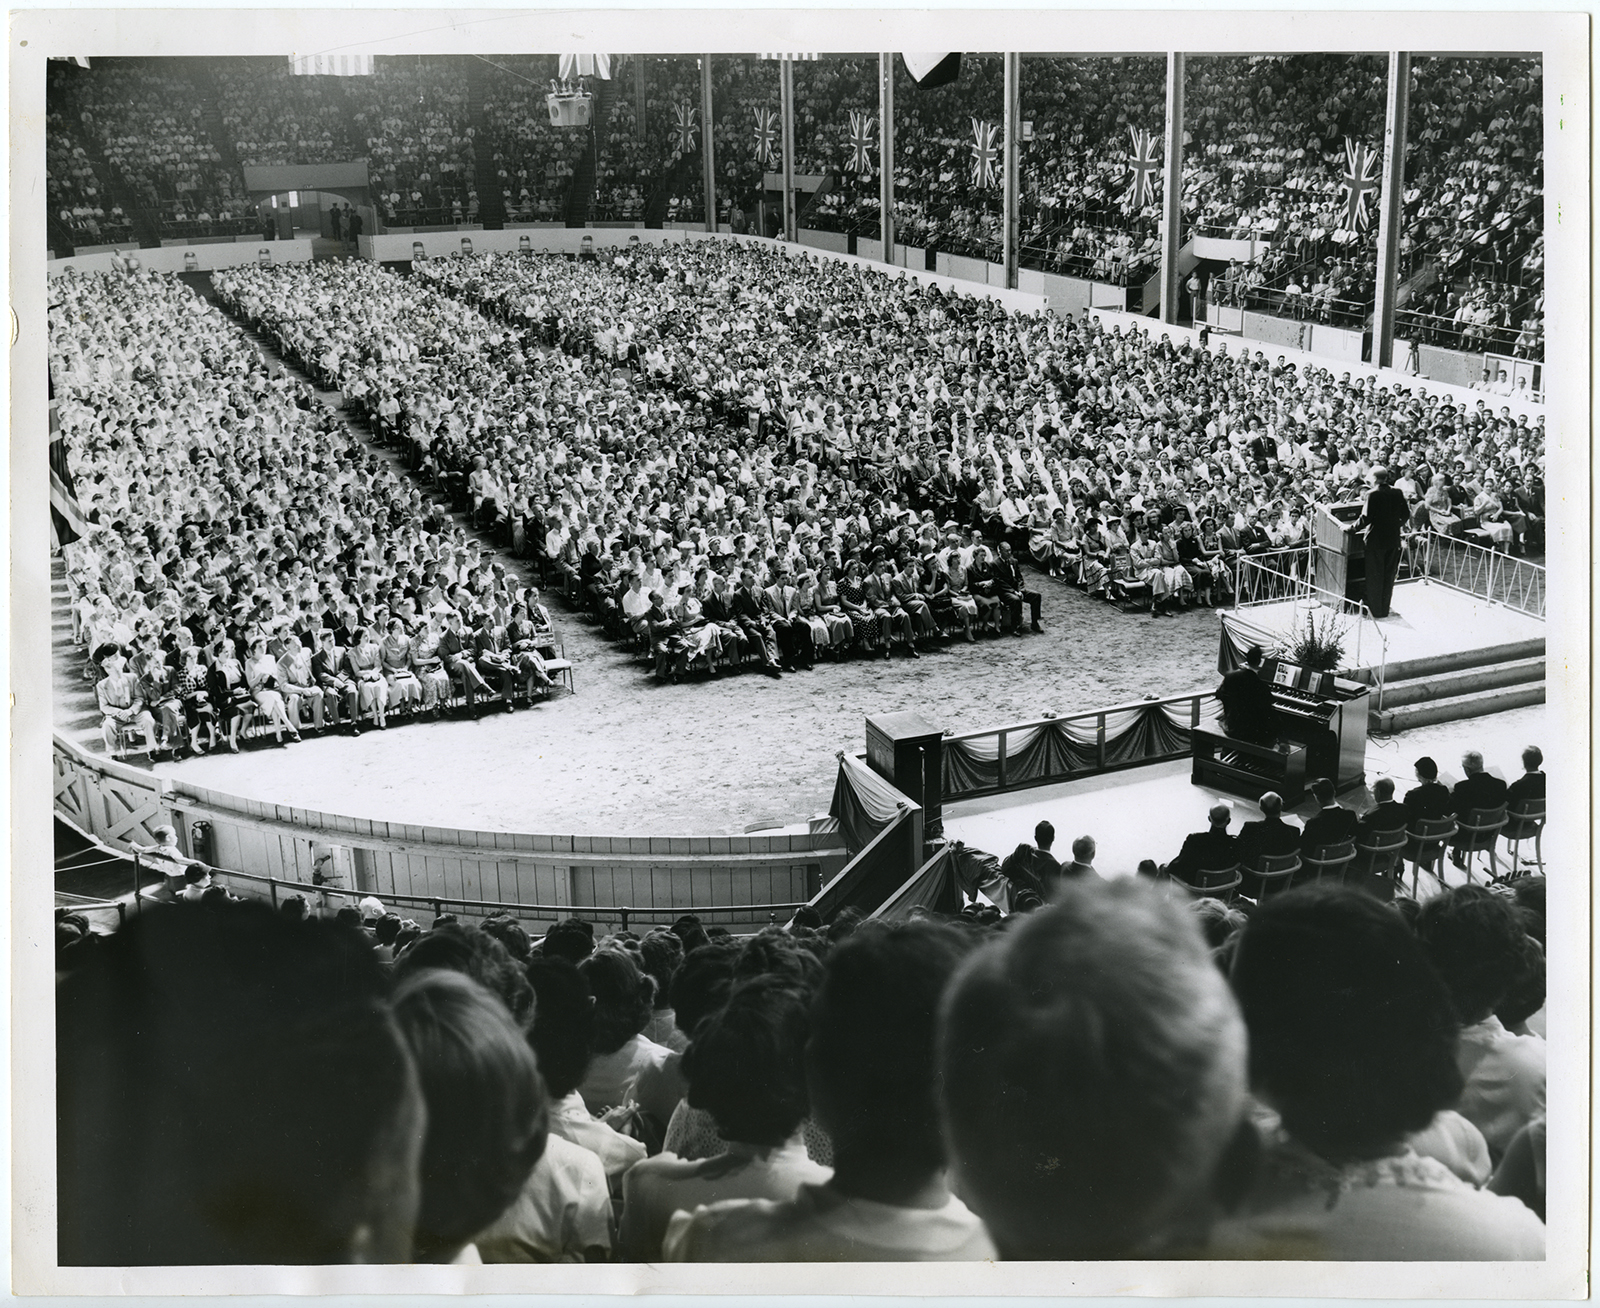 American Evangelist Billy Graham holds a rally at the Toronto Coliseum in September 1955. Graham held a month-long Greater Toronto Crusade in the Canadian city. RNS archive photo. Photo coutresy of the Presbyterian Historical Society.